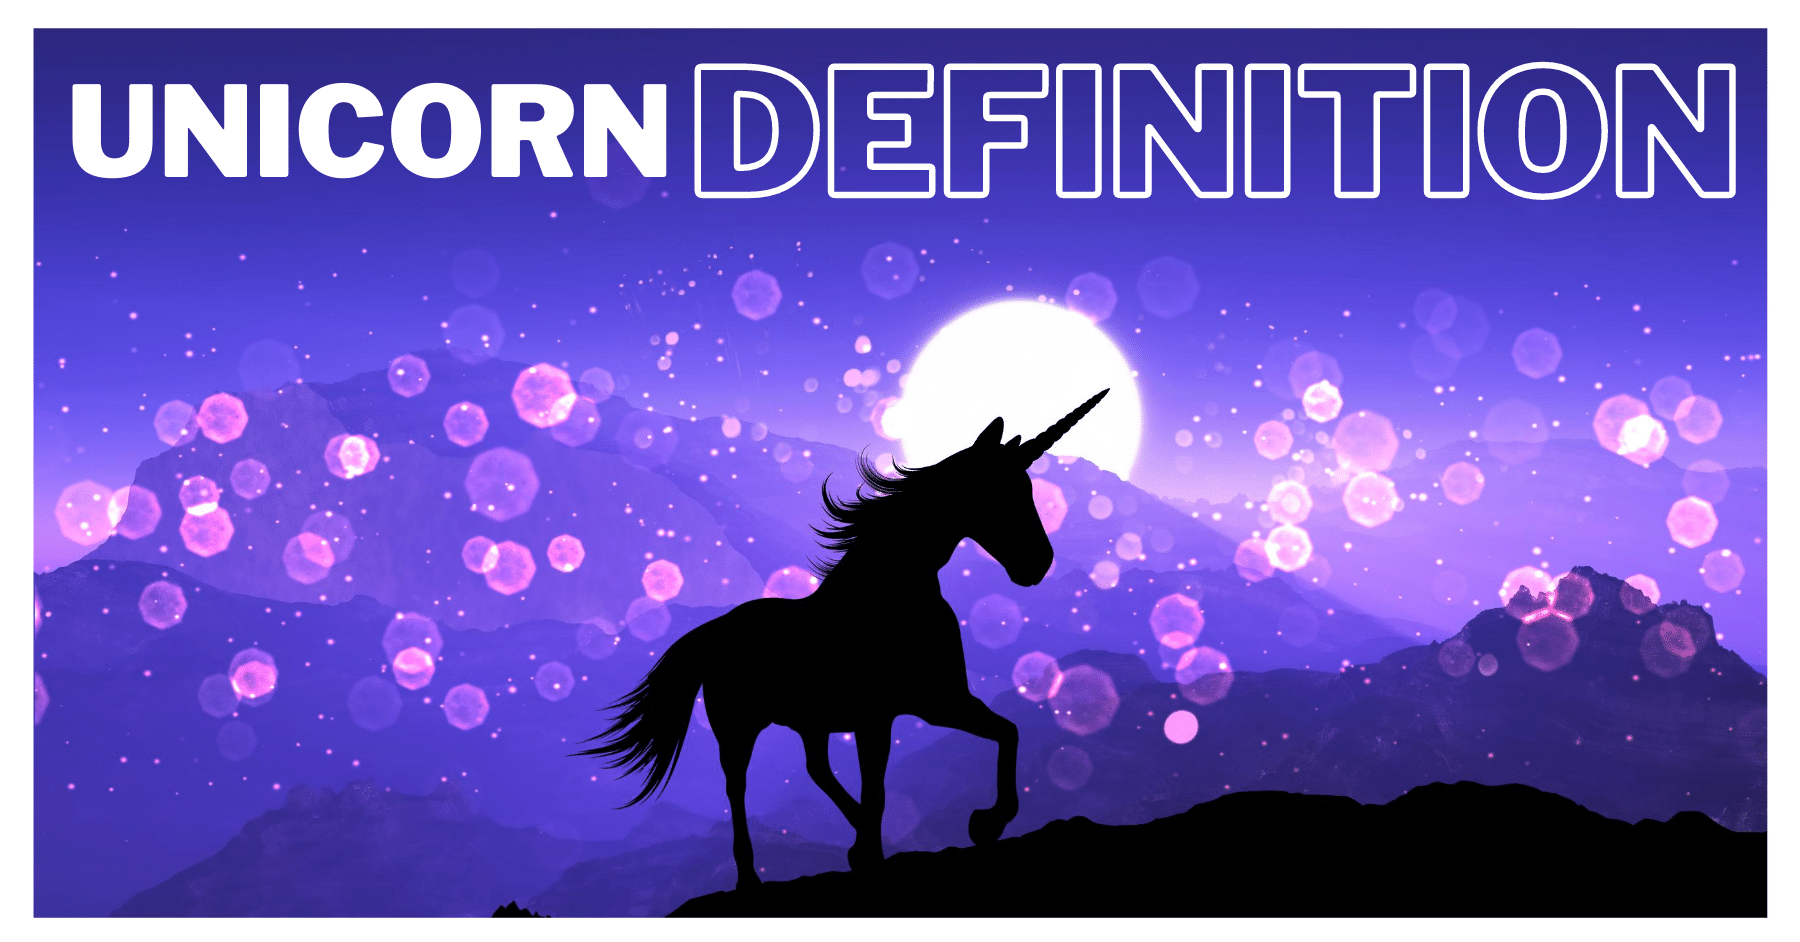 Unicorn definition